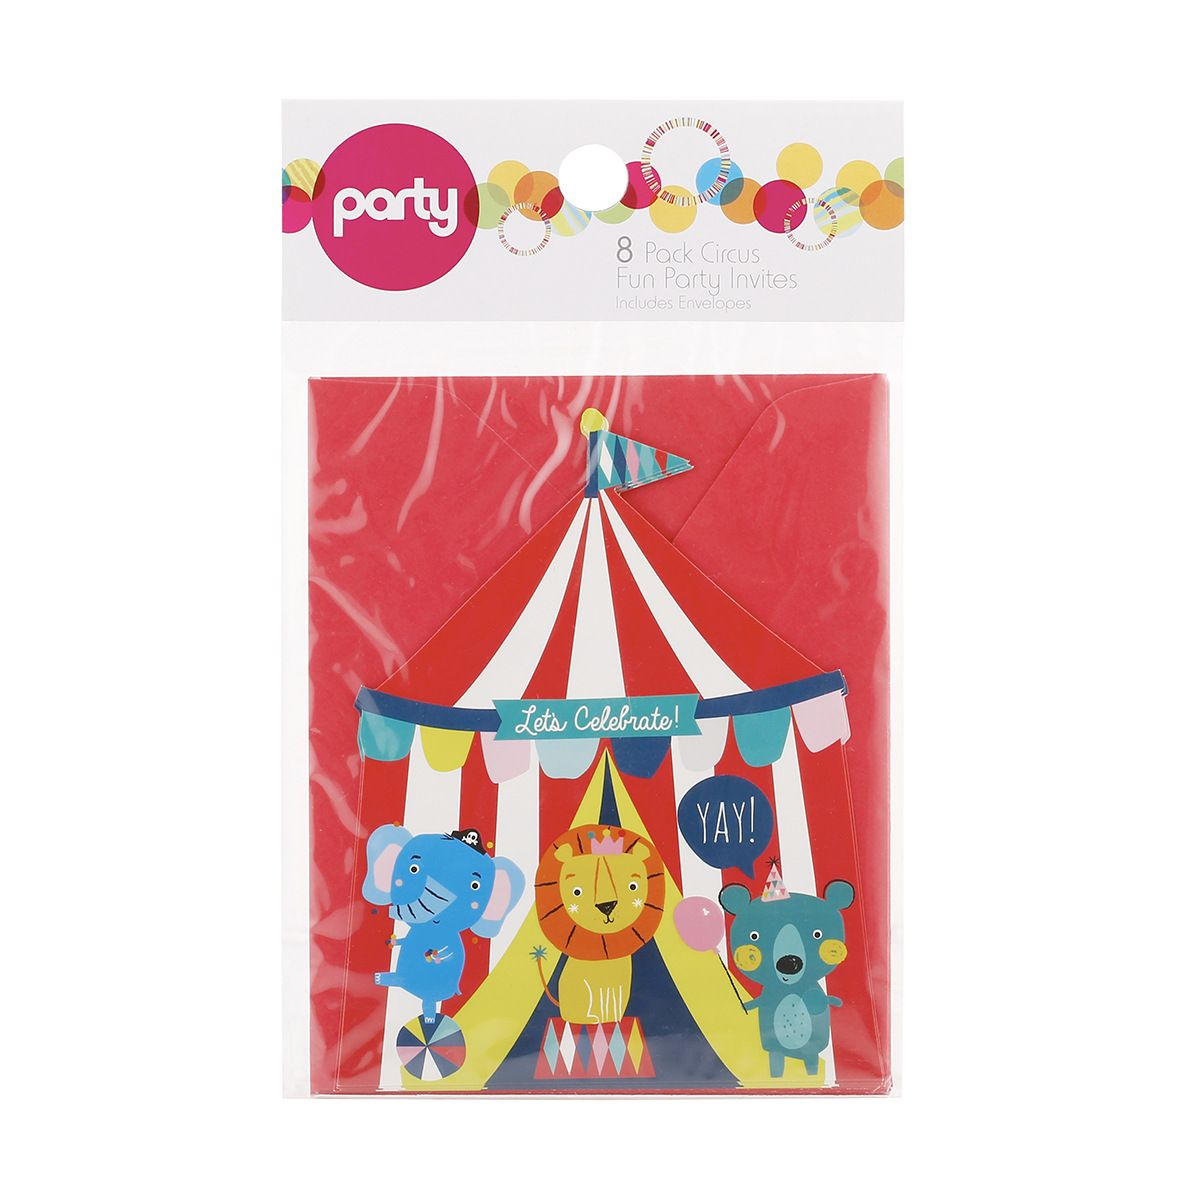 Party Invites Circus Fun, Pack of 8 Kmart 2 Party